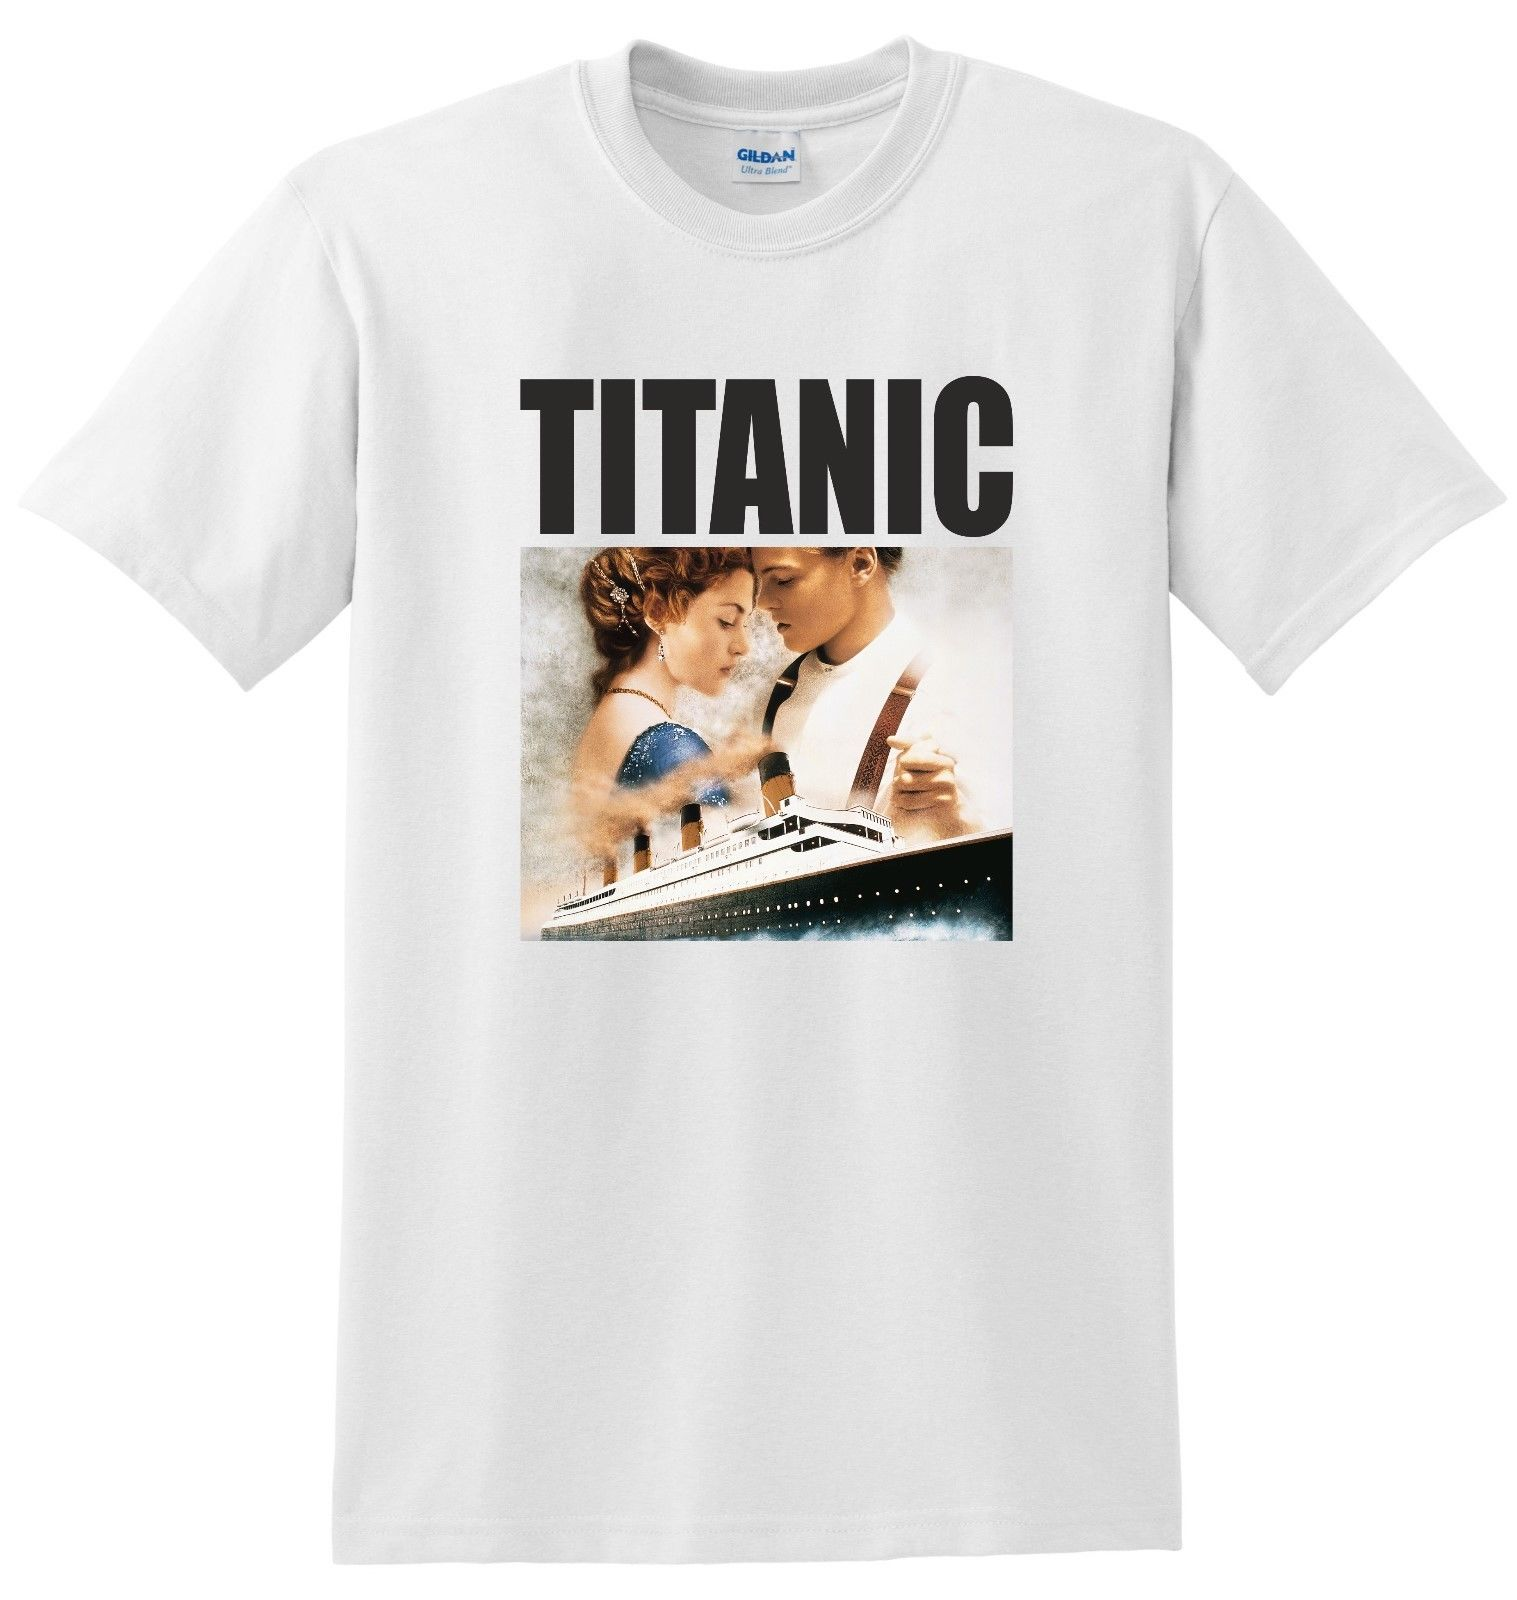 Titanic T shirt 1997 film hollywood free delivery New T Shirts Funny Tops Tee New Unisex Funny High Quality Casual Printing in T Shirts from Men 39 s Clothing